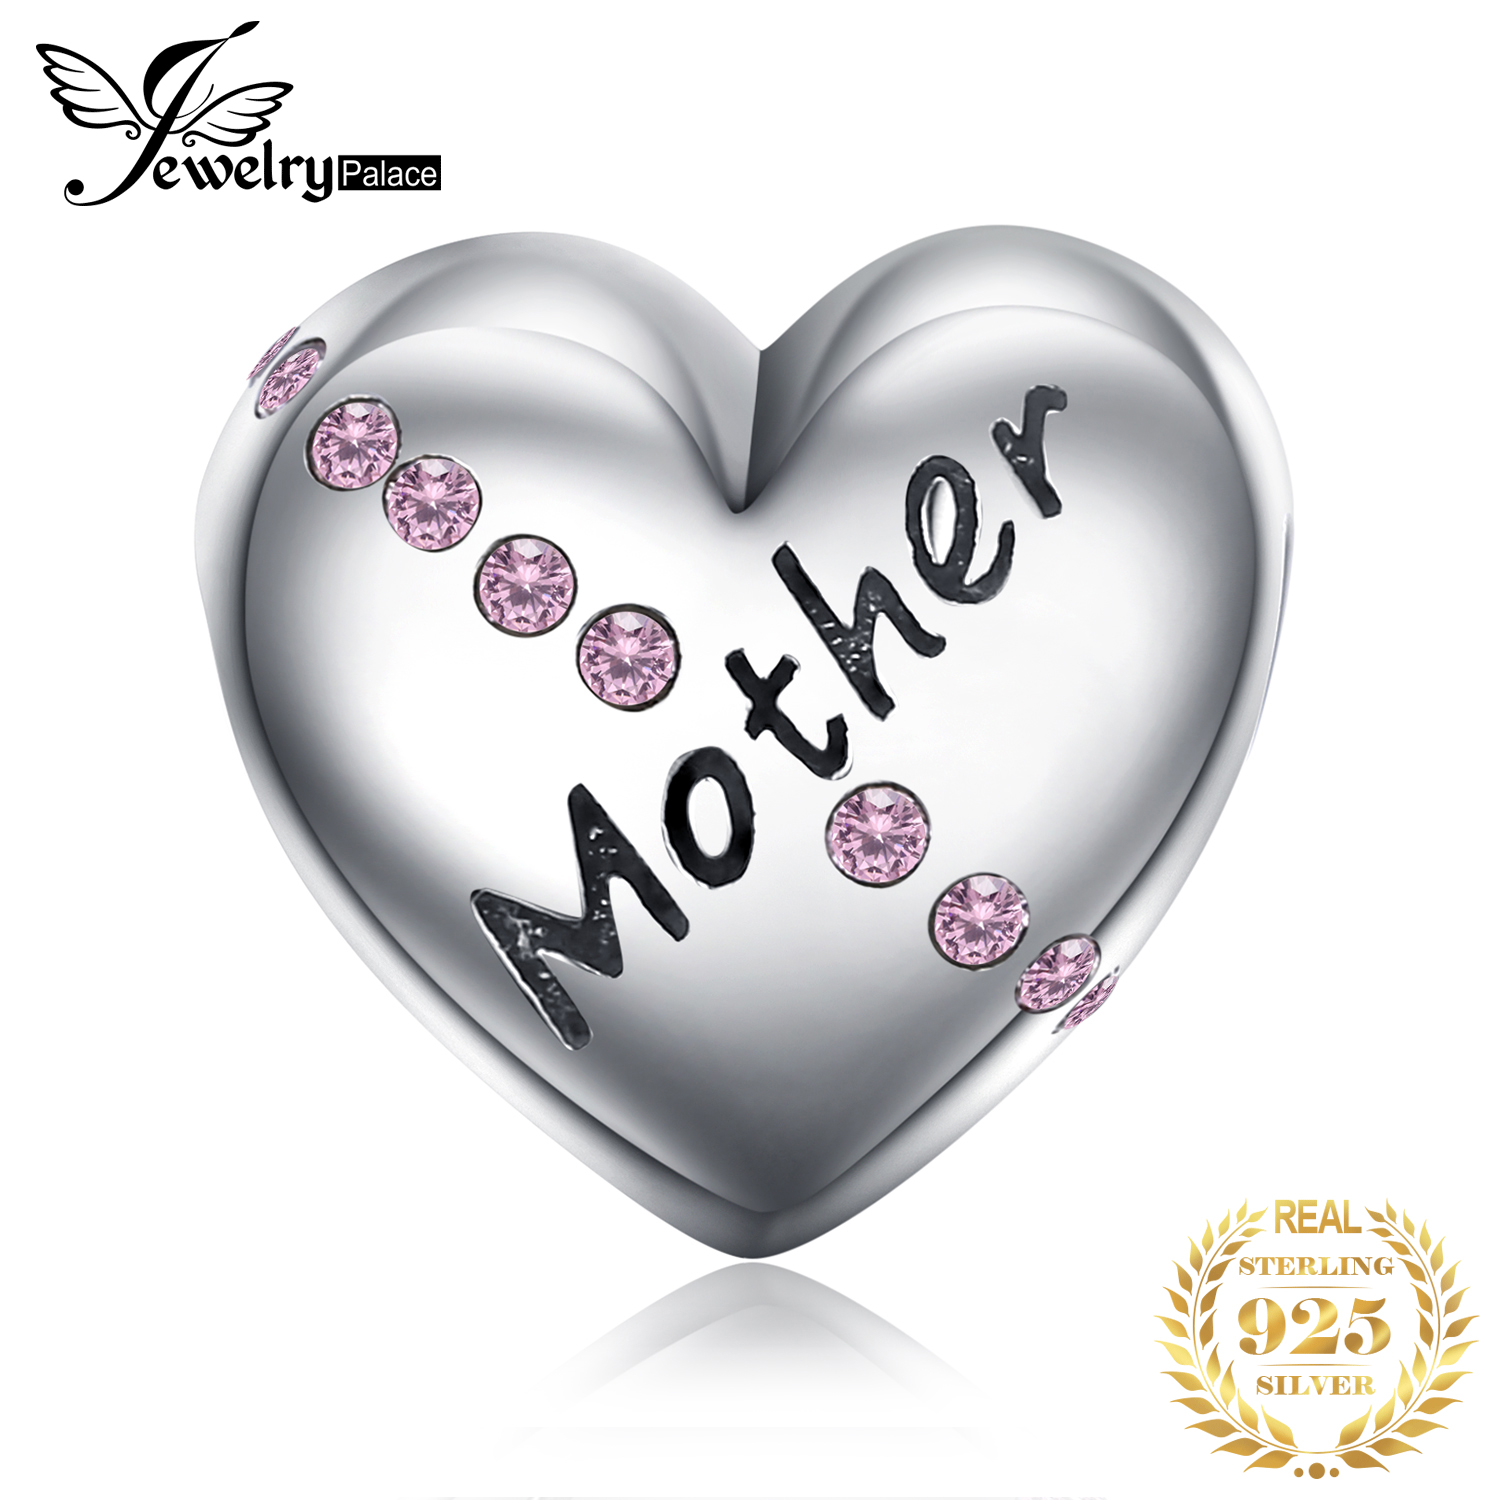 JewelryPalace Heart Mother 925 Sterling Silver Beads Charms Silver 925 Original For Bracelet Silver 925 Original Jewelry Making